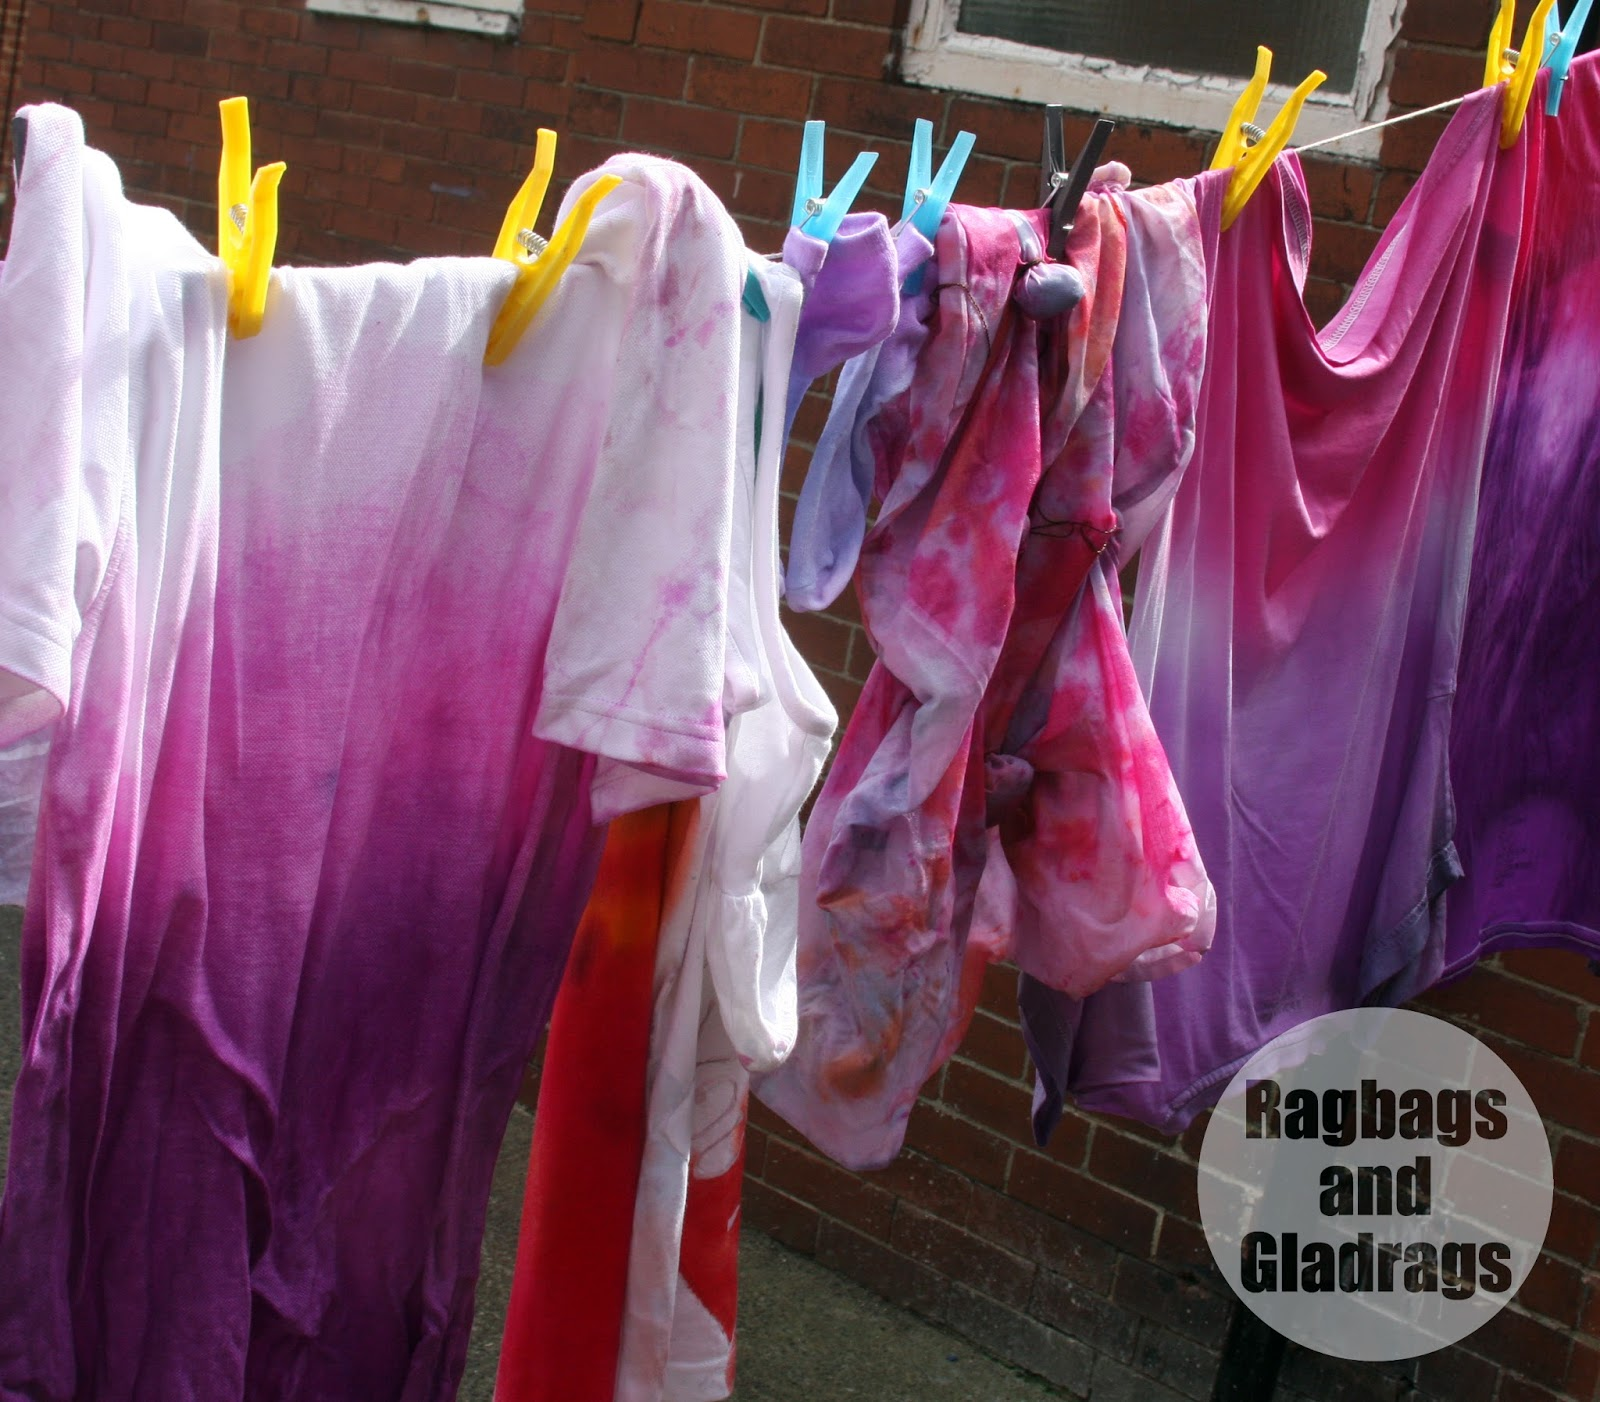 ragbags and gladrags - Made by the Sea: Summer Activity Day